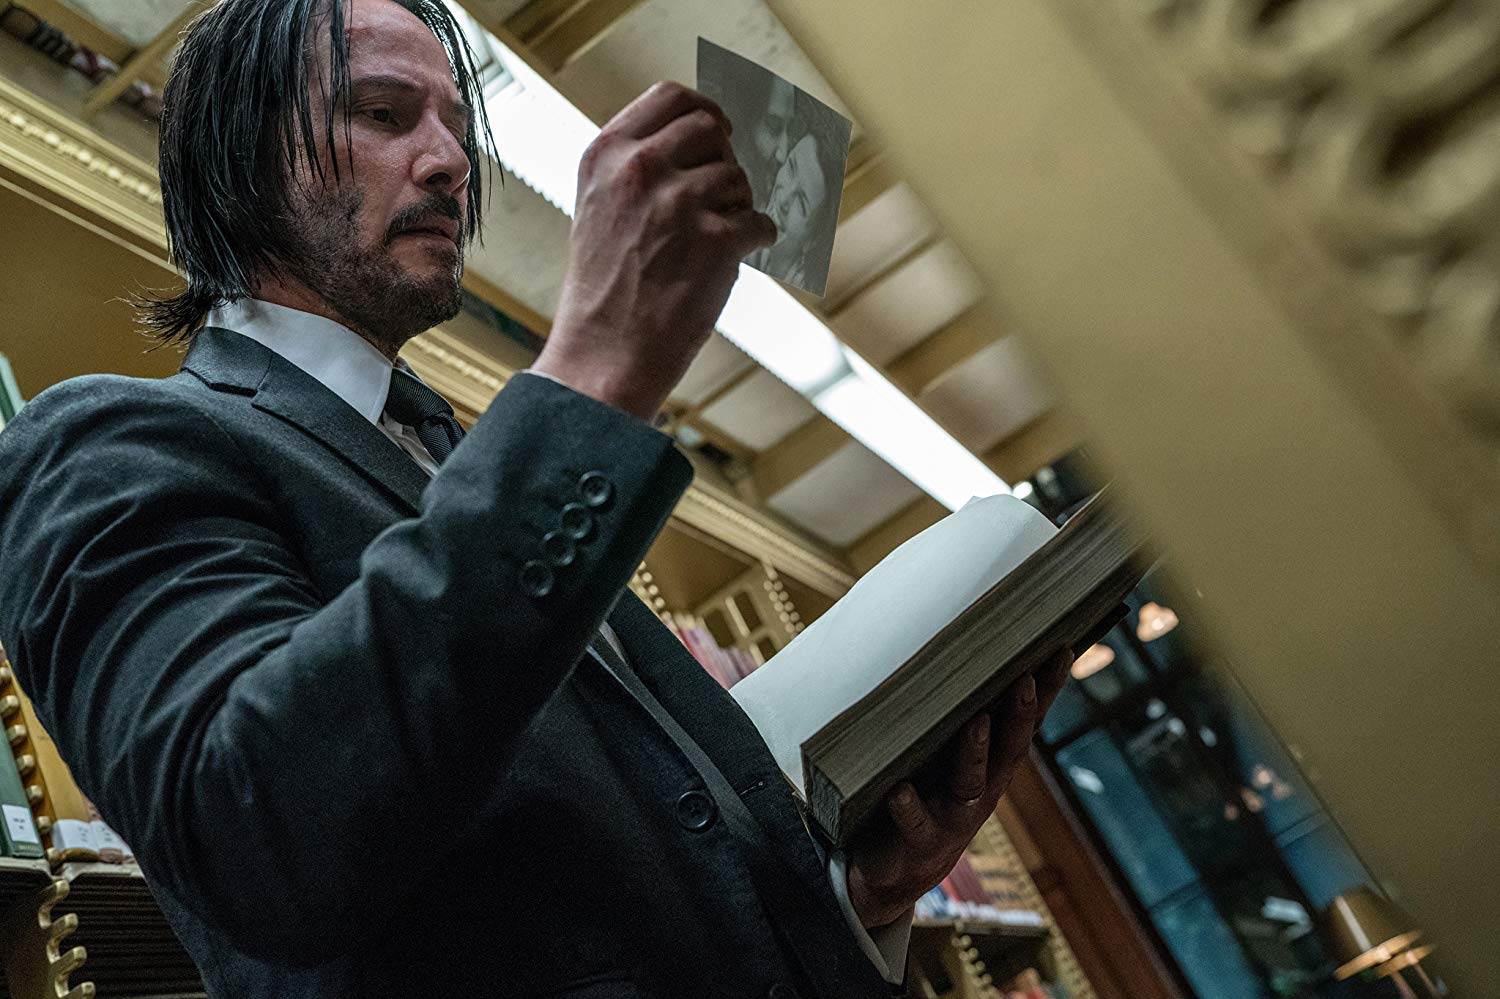 regarder john wick streaming vostfr